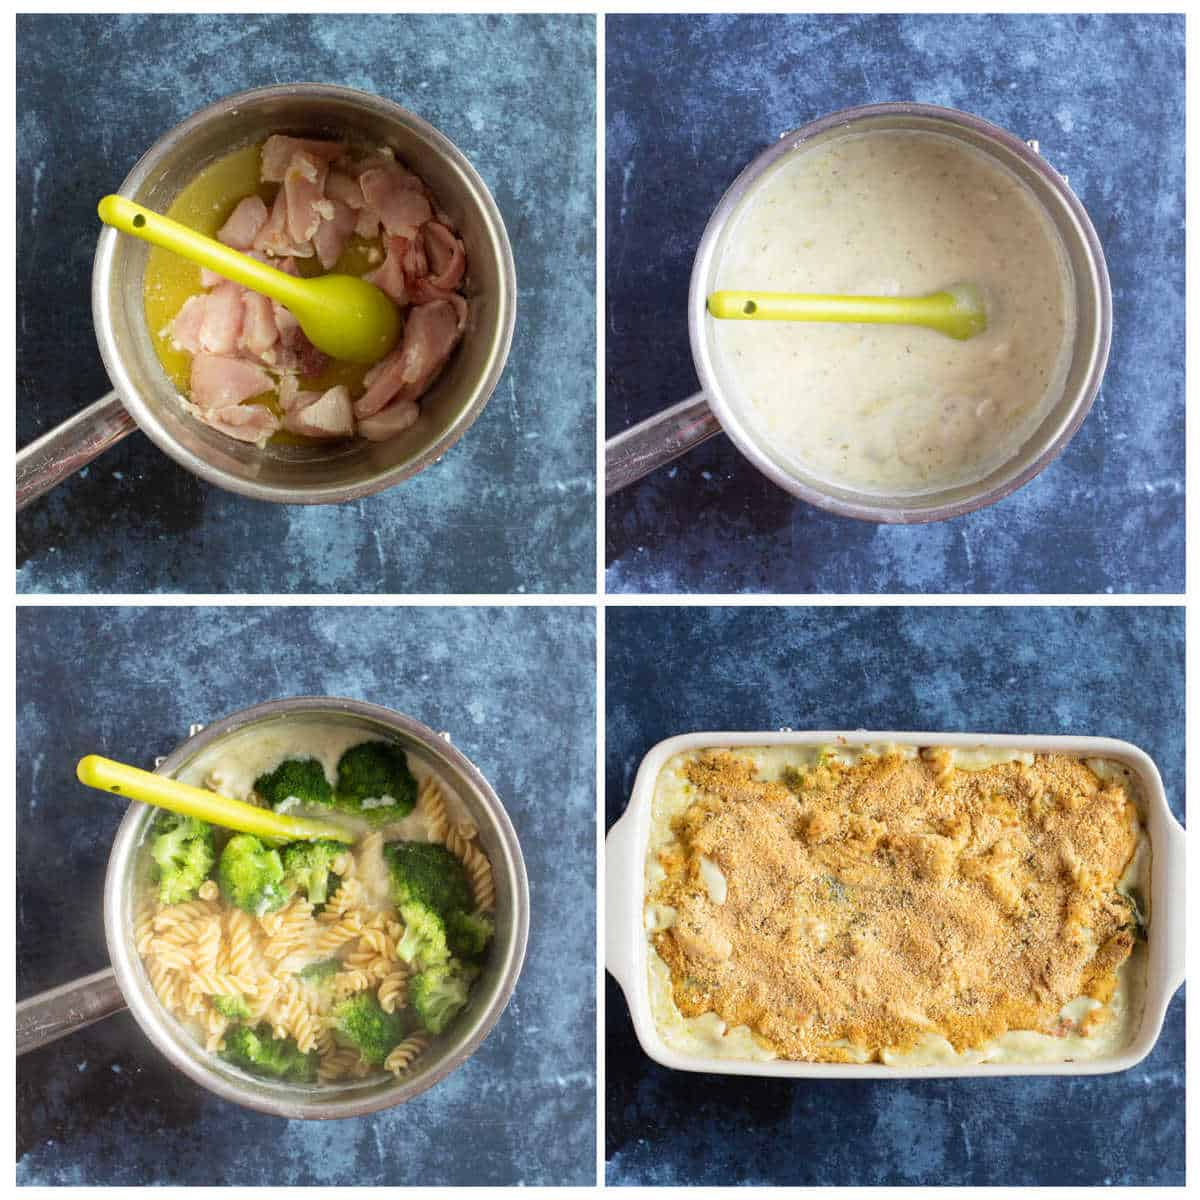 Step by step photo instruction collage for making the pasta bake.